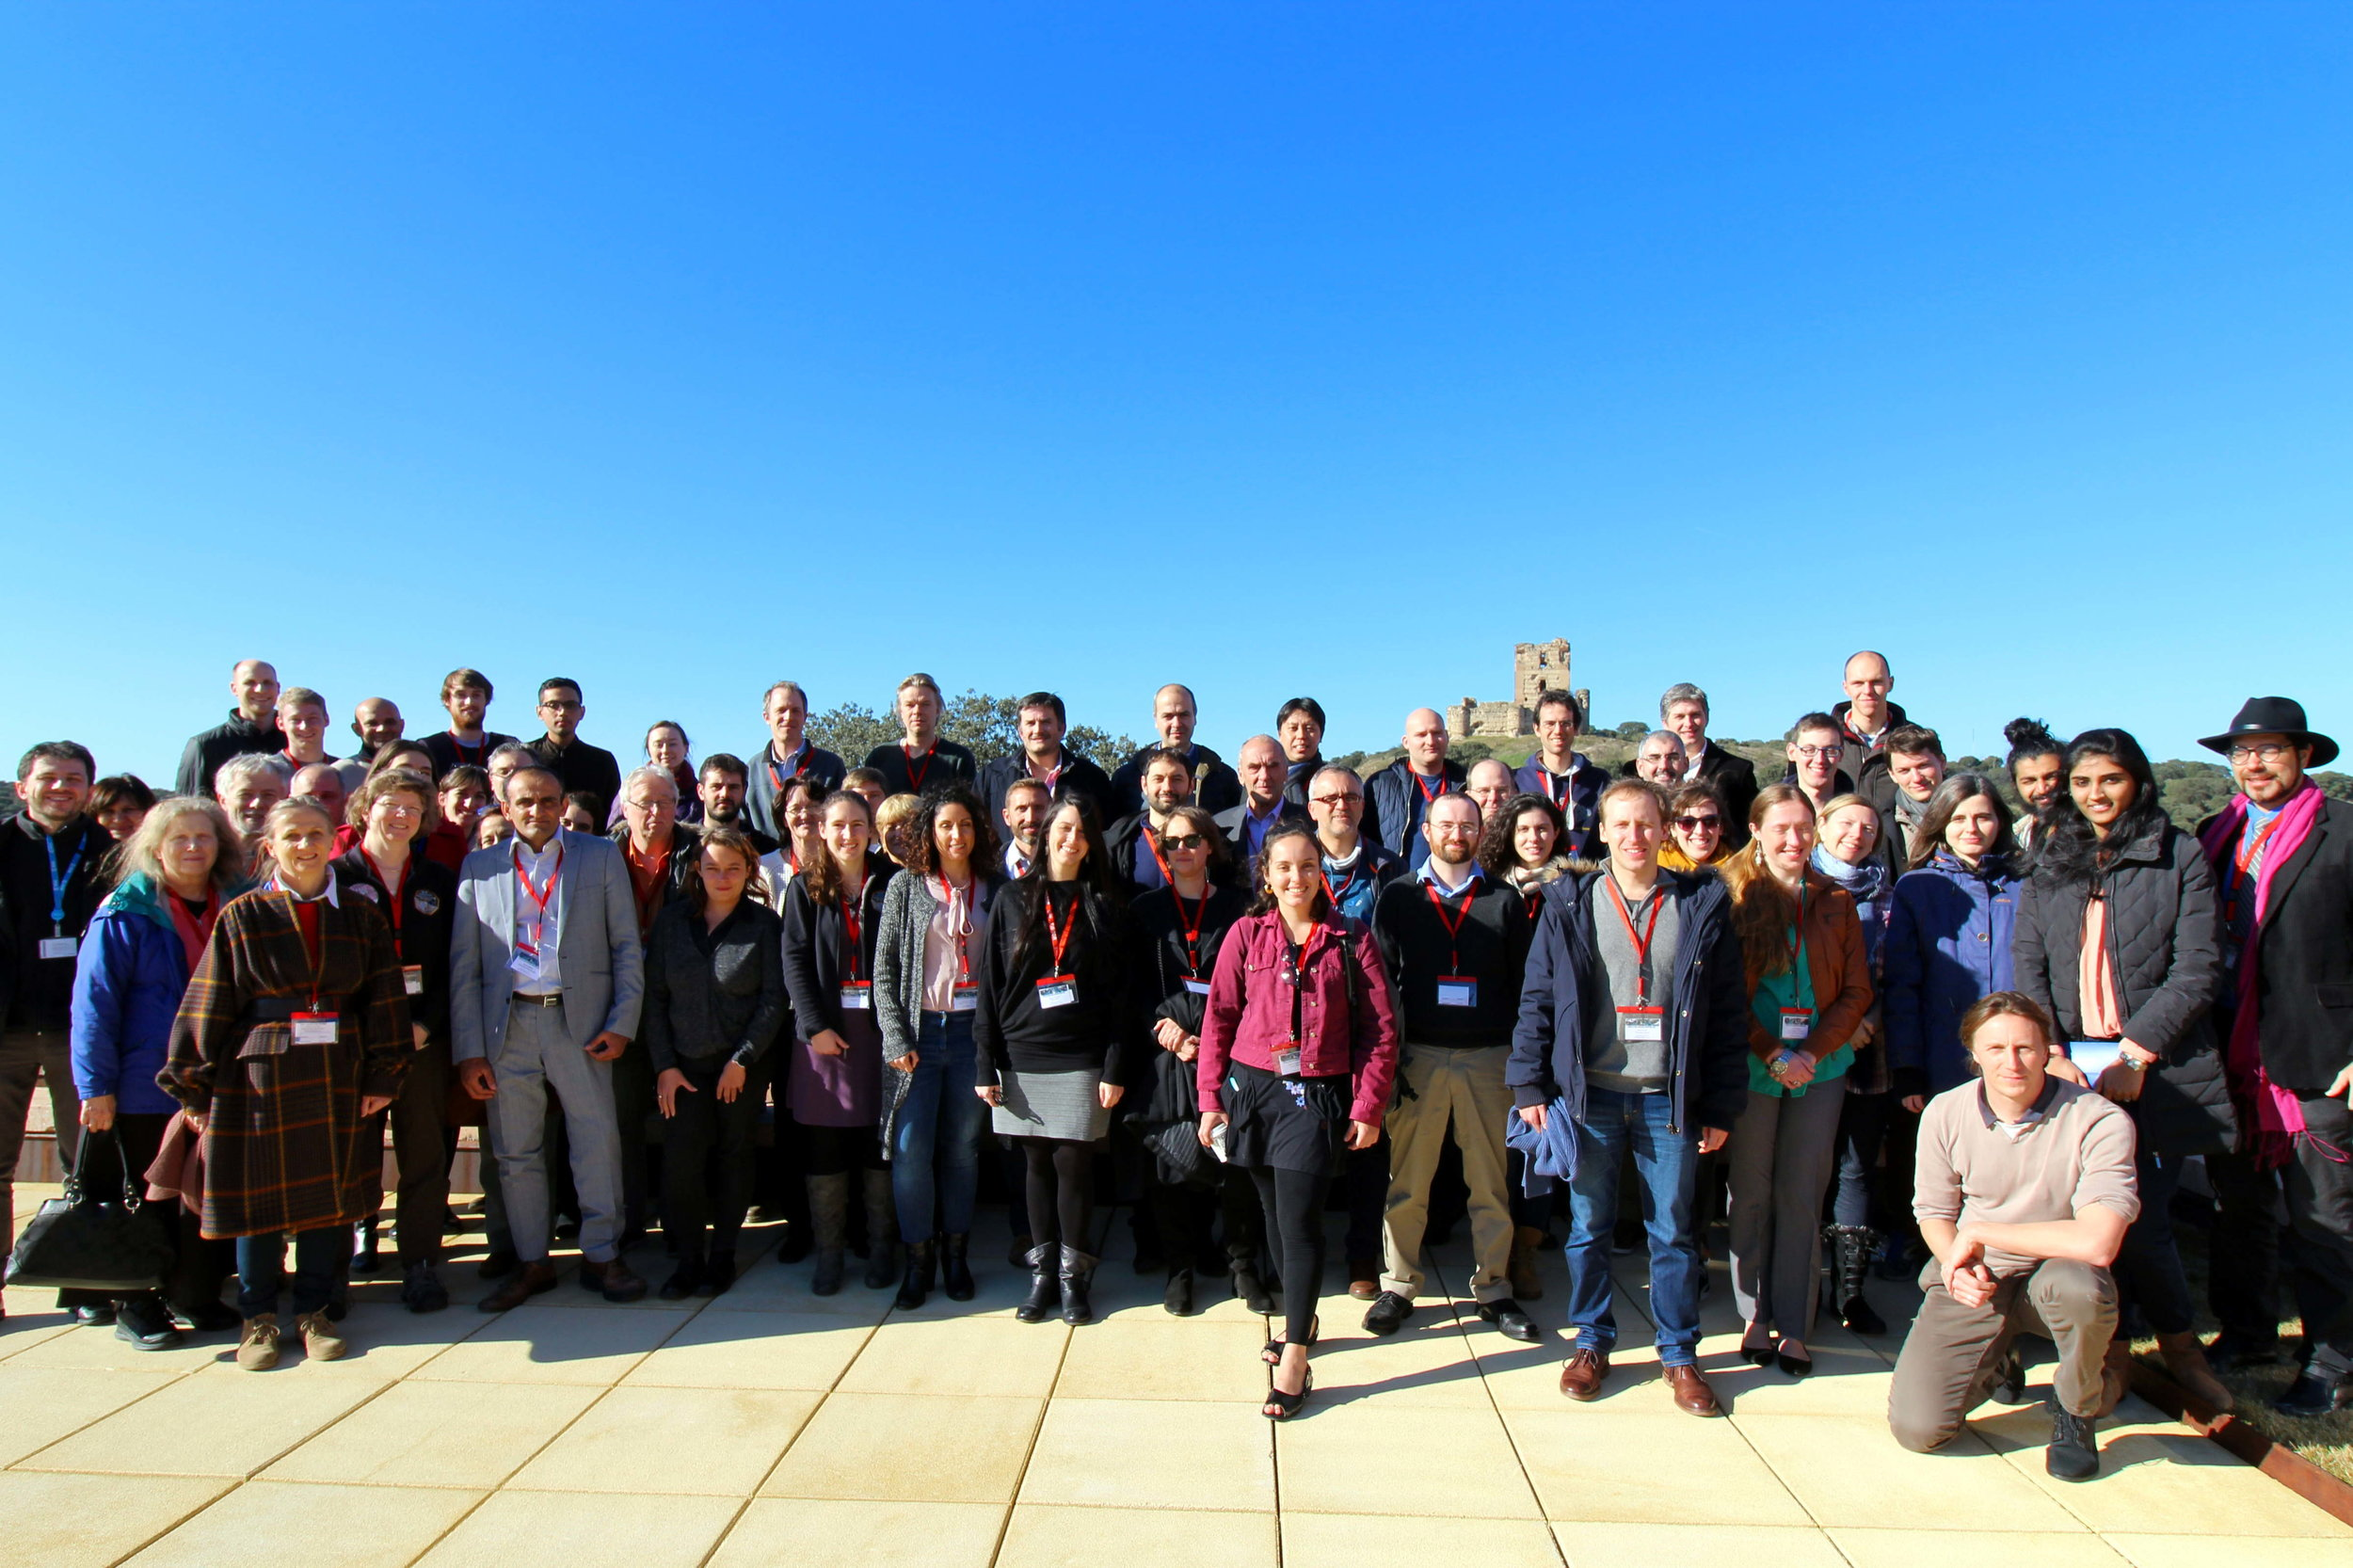 Ices in the Solar System Meeting Group at the ESA-ESAC. There's a 15th century castle in the background!